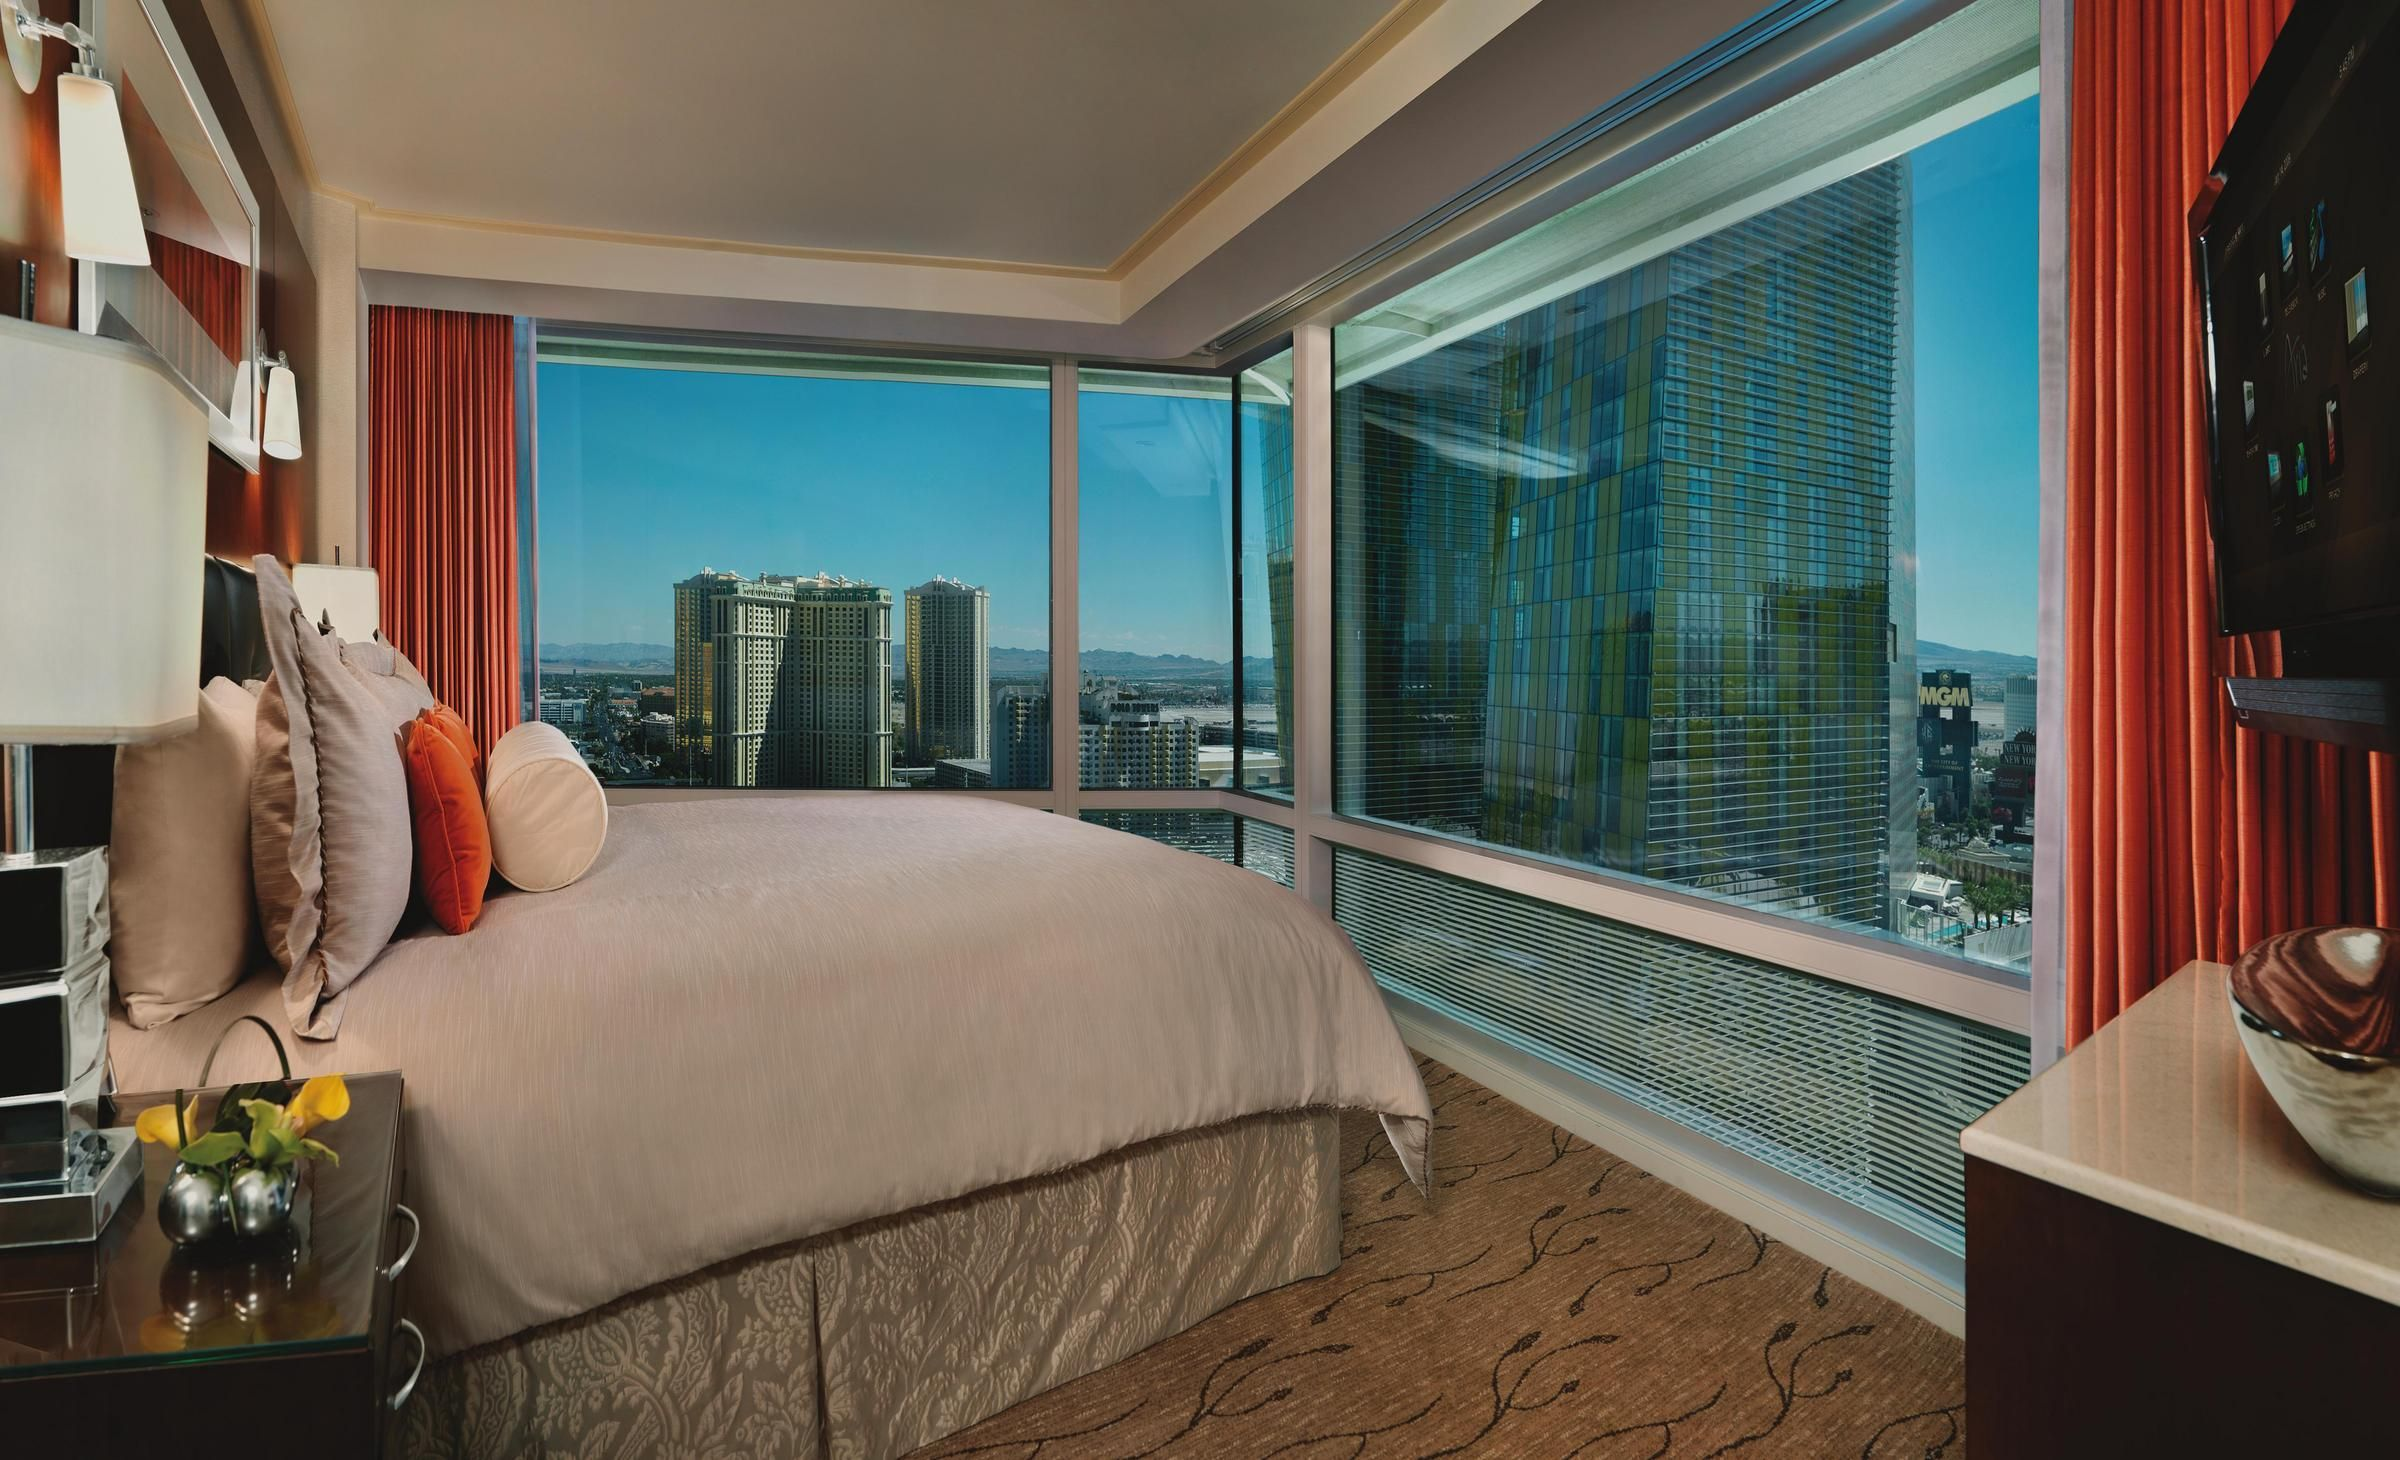 Yet Another Beautiful View Of Las Vegas From ARIA's